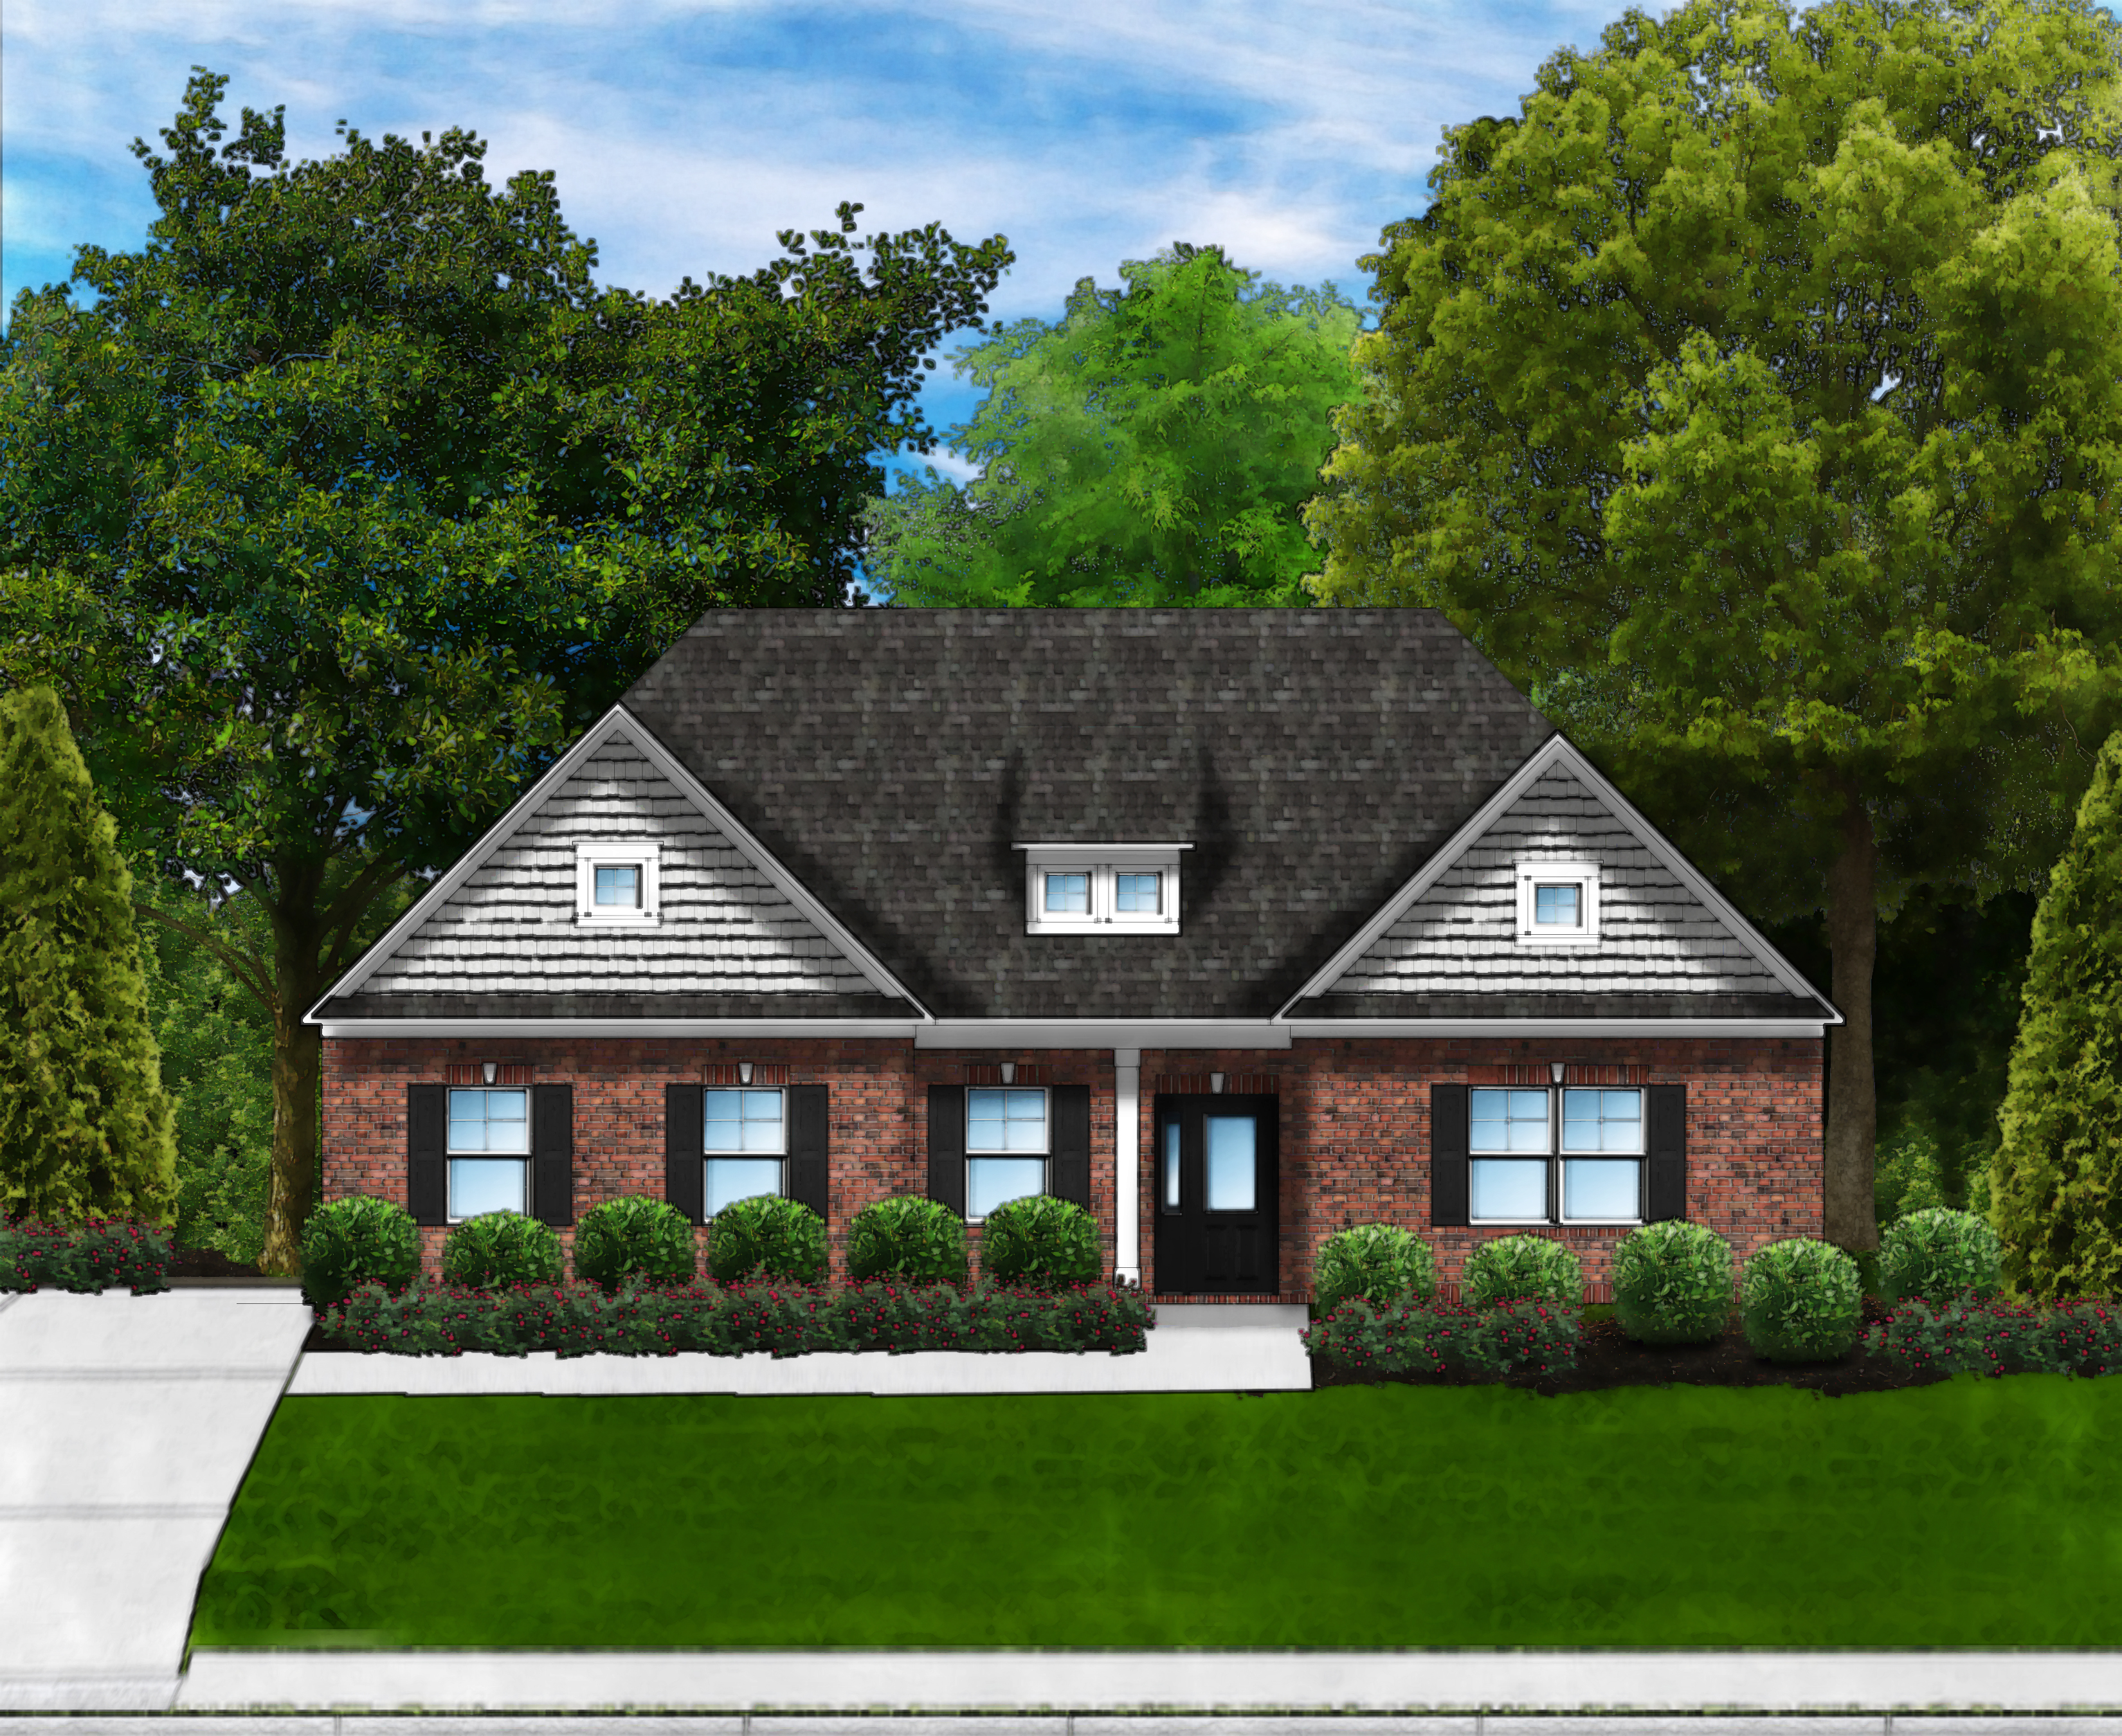 Marsh Bay D4 (Brick 4 Sides) by Great Southern Homes